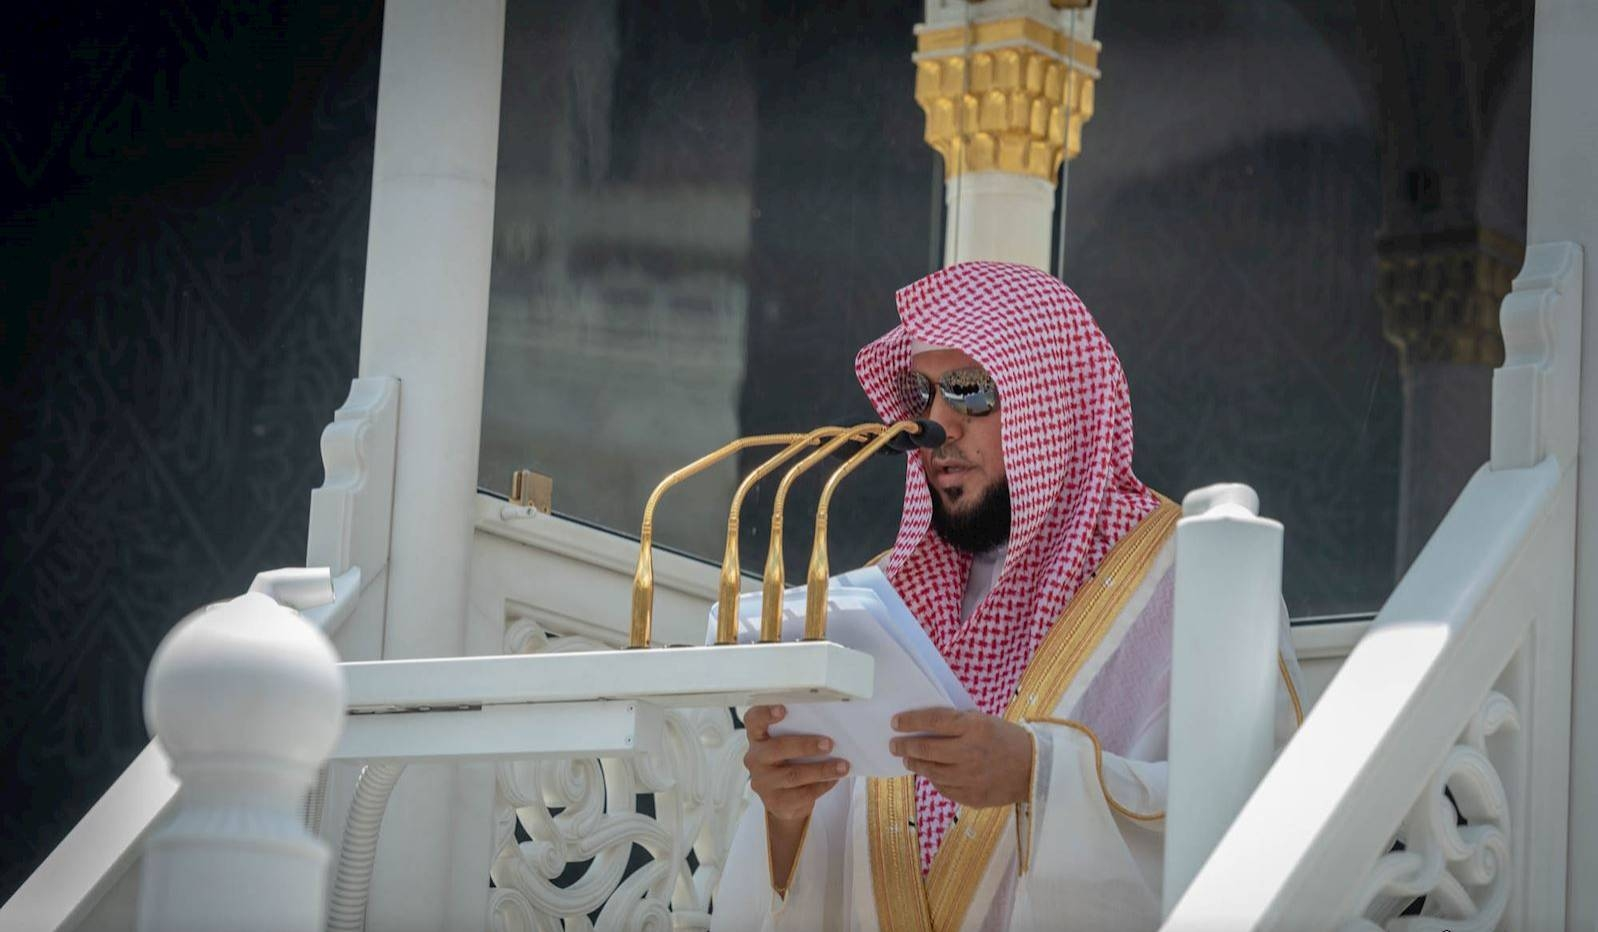 Sheikh Maher Al-Moiqali, imam and khateeb of the Grand Mosque, delivering Friday sermon in Makkah. — SPA